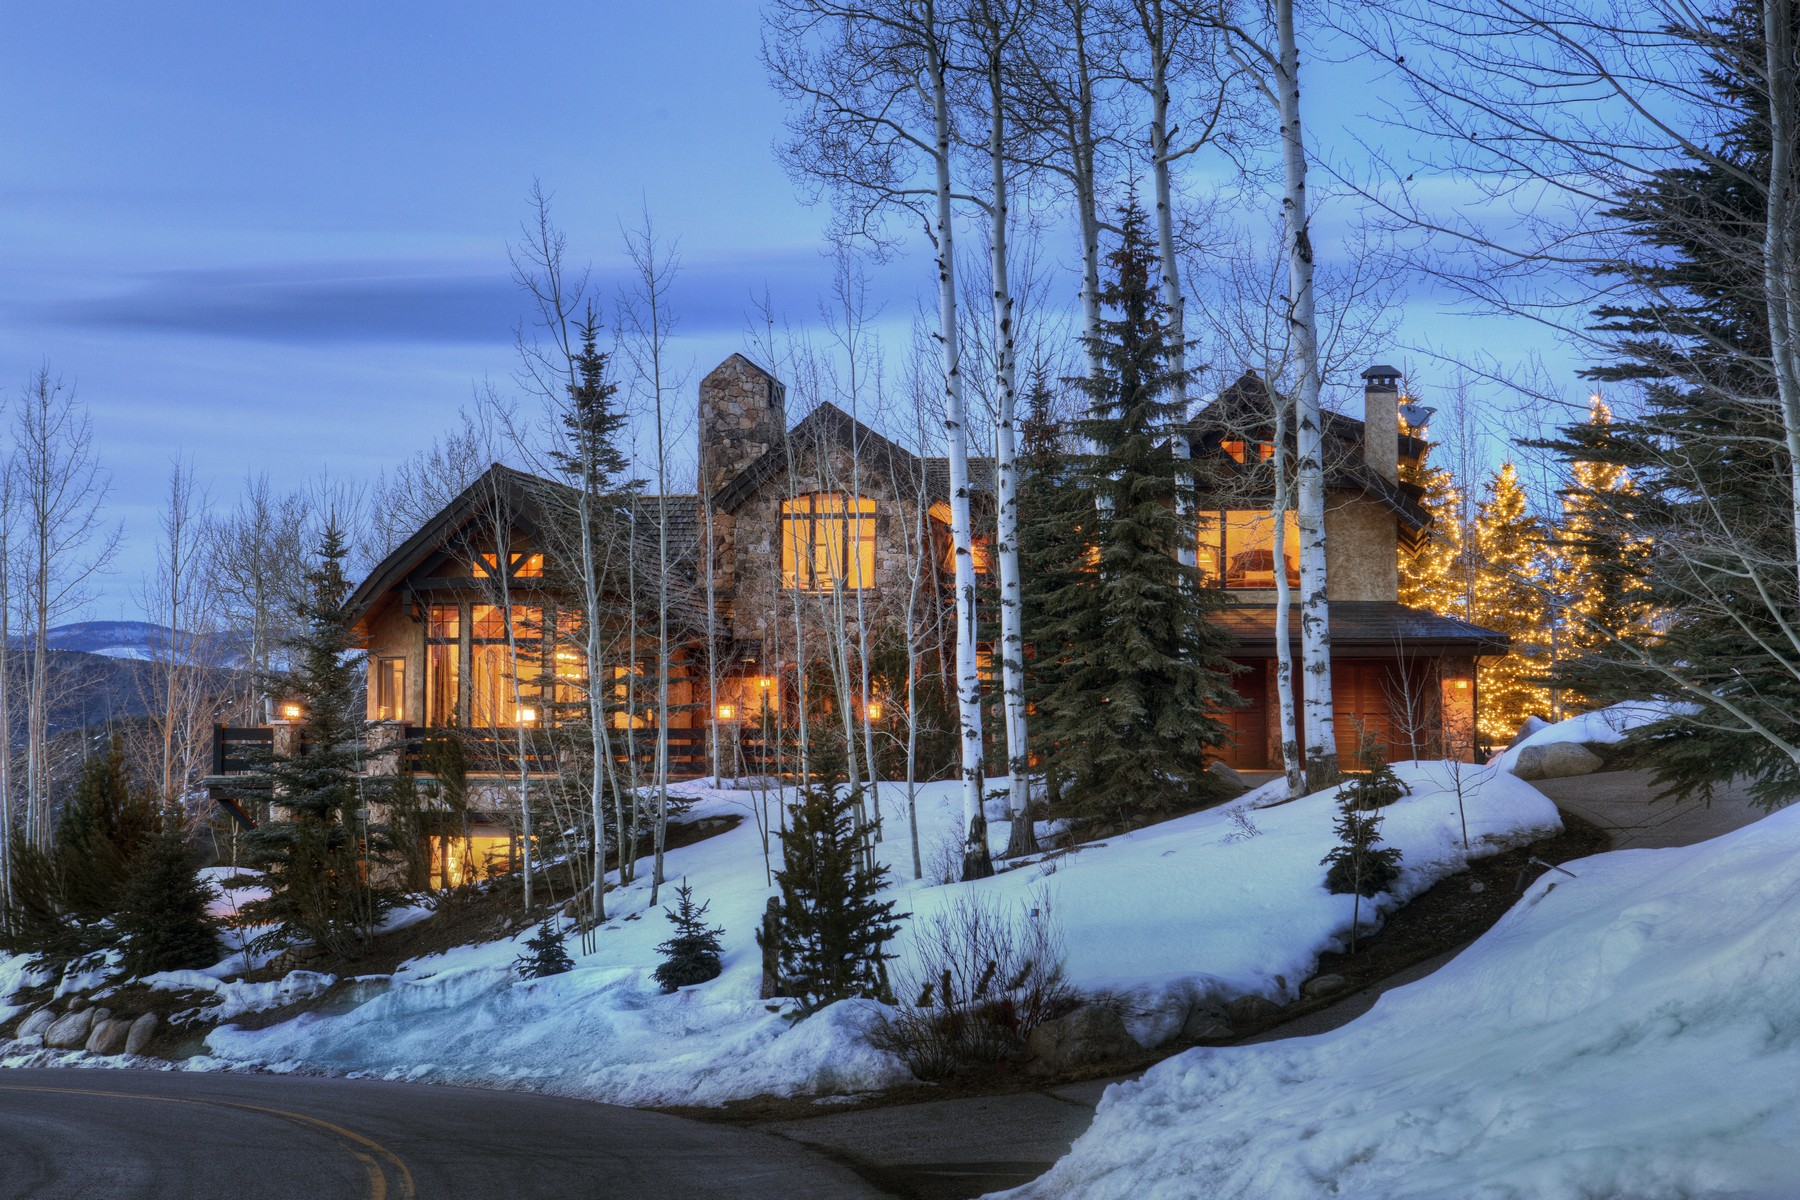 Single Family Home for Sale at Perfect Mountain Retreat 680 Pine Crest Drive Snowmass Village, Colorado 81615 United States